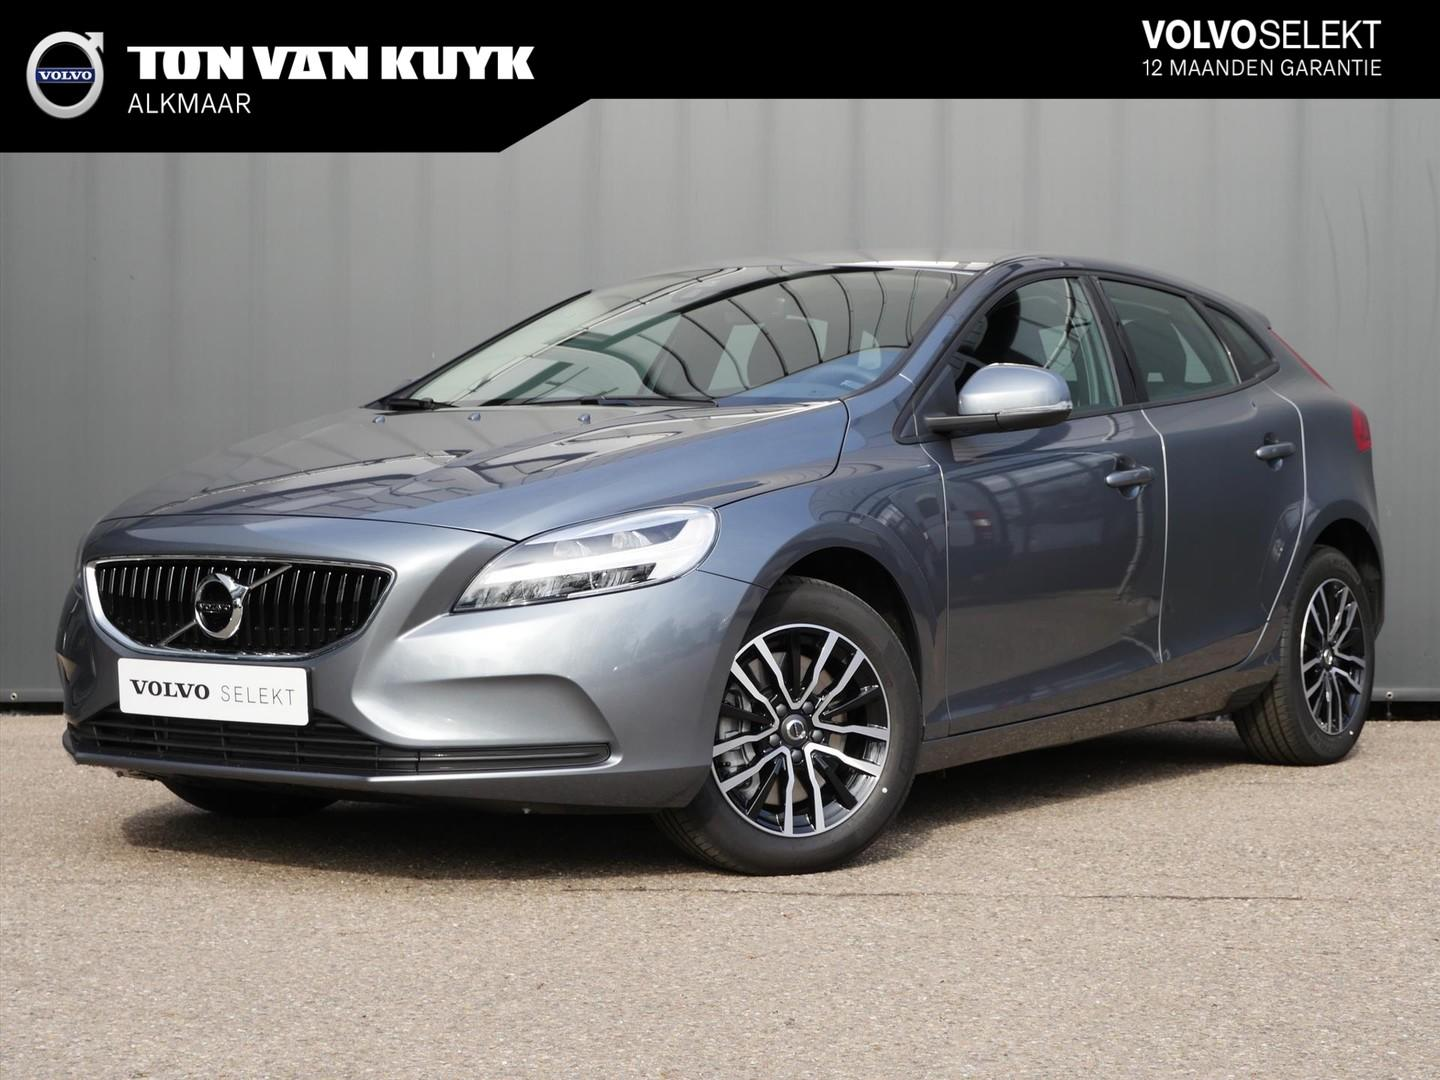 Volvo V40 T2 aut edition+ / dab+ / stoelverwarming / led